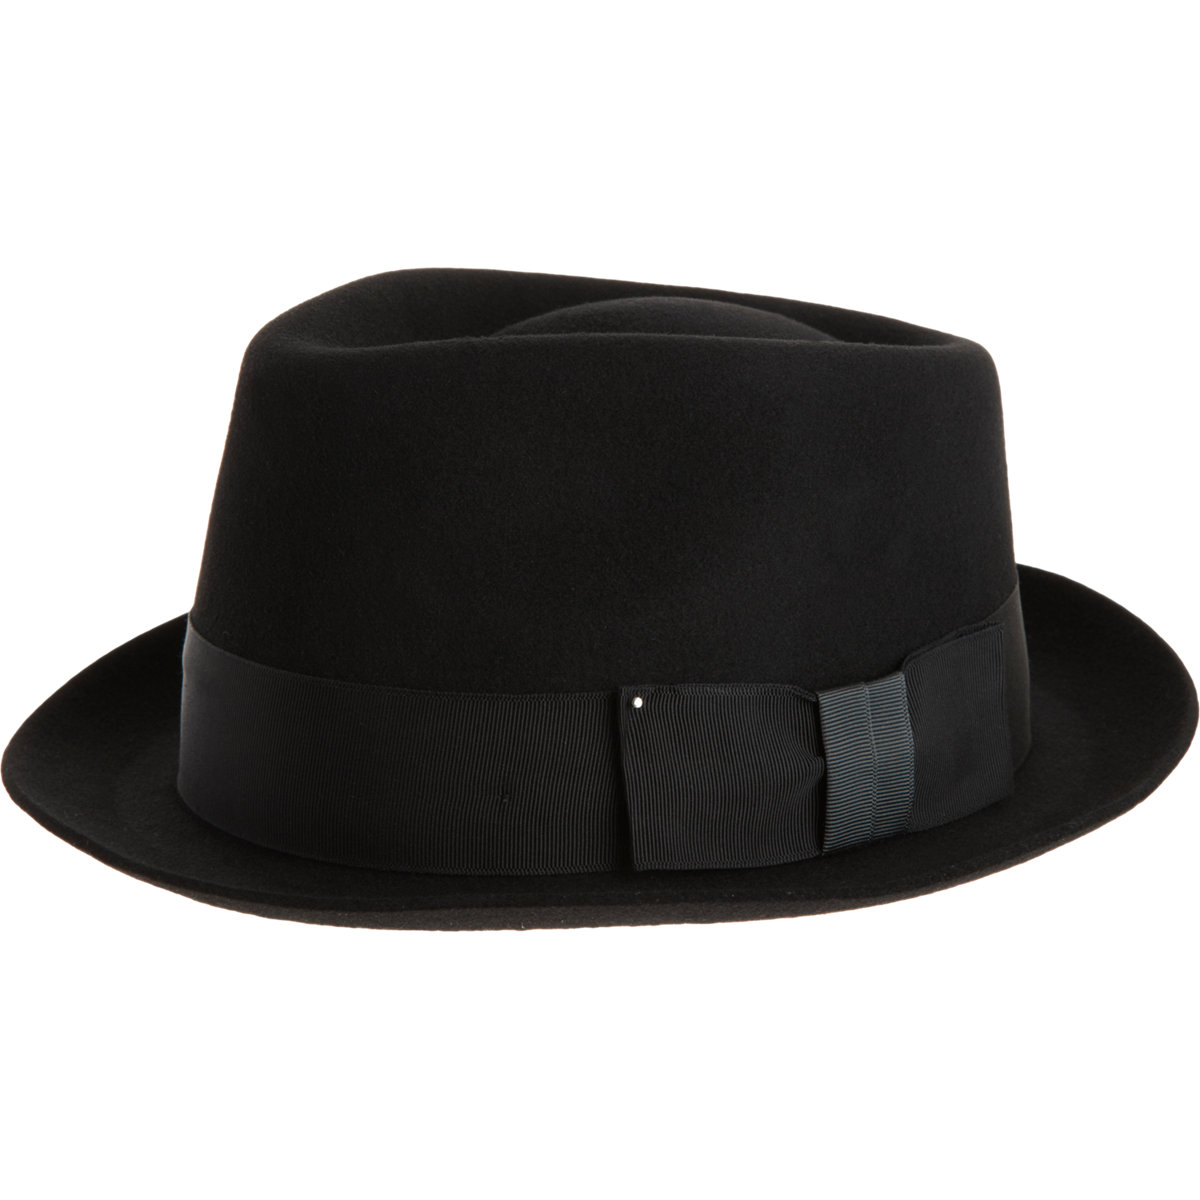 Stetson Men's Scala Vented Trilby Hat, Black, Size XL. Hats by Stetson. Comes in Black, Size coolzloadwok.ga-maker Dorfman-Pacific adds another superb design in this open-weave straw fedora with a modern trilby shape. Teardrop crown; stingy 1 1/2 snap brim is slightly longer in the front.